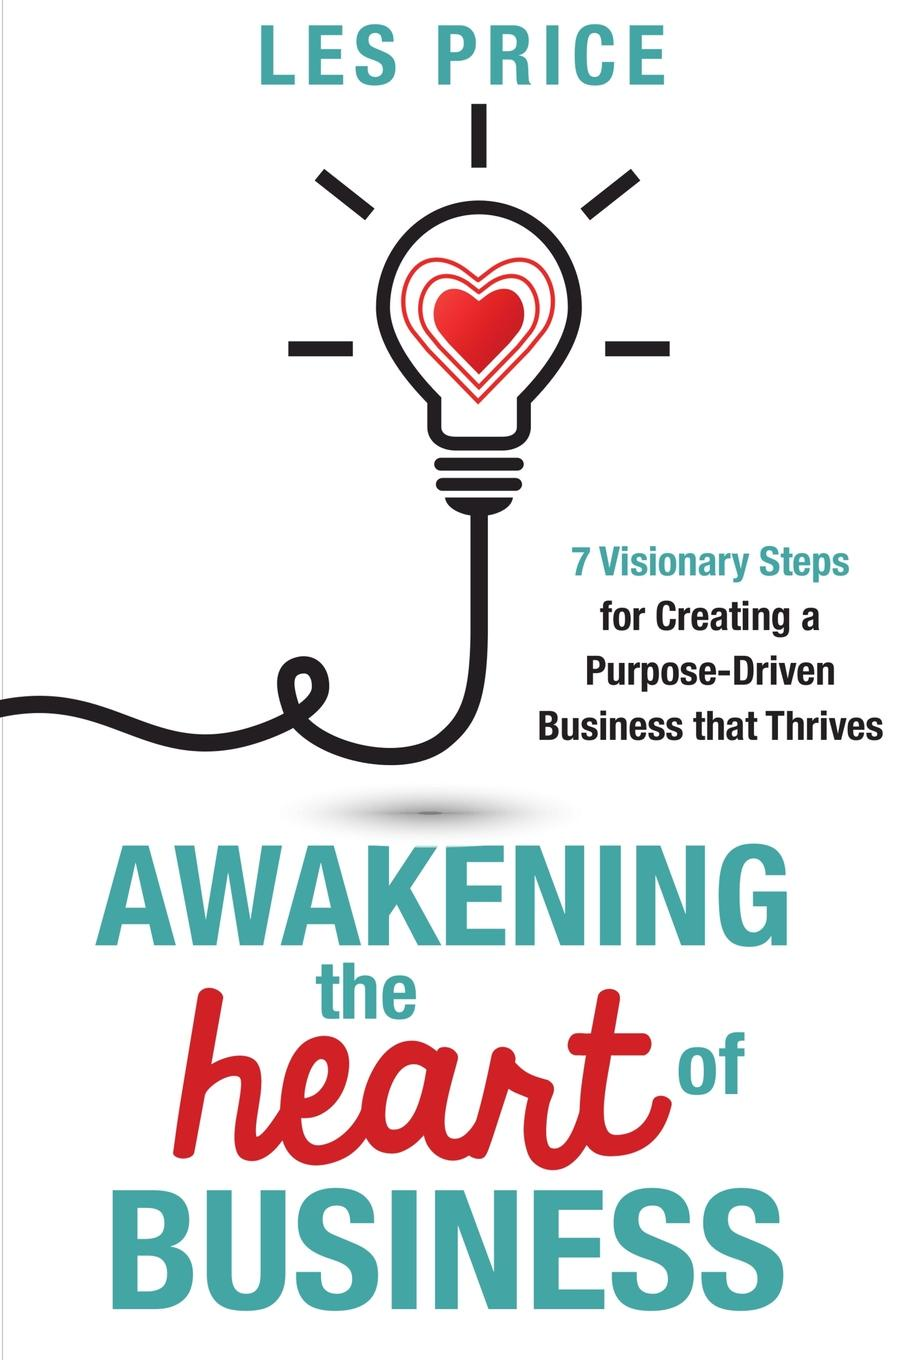 Фото - Les Price Awakening the Heart of Business. 7 Visionary Steps for Creating a Purpose-Driven Business that Thrives pieter k de villiers barefoot business 3 key systems to attract more leads win more sales and delight more customers without your business killing you